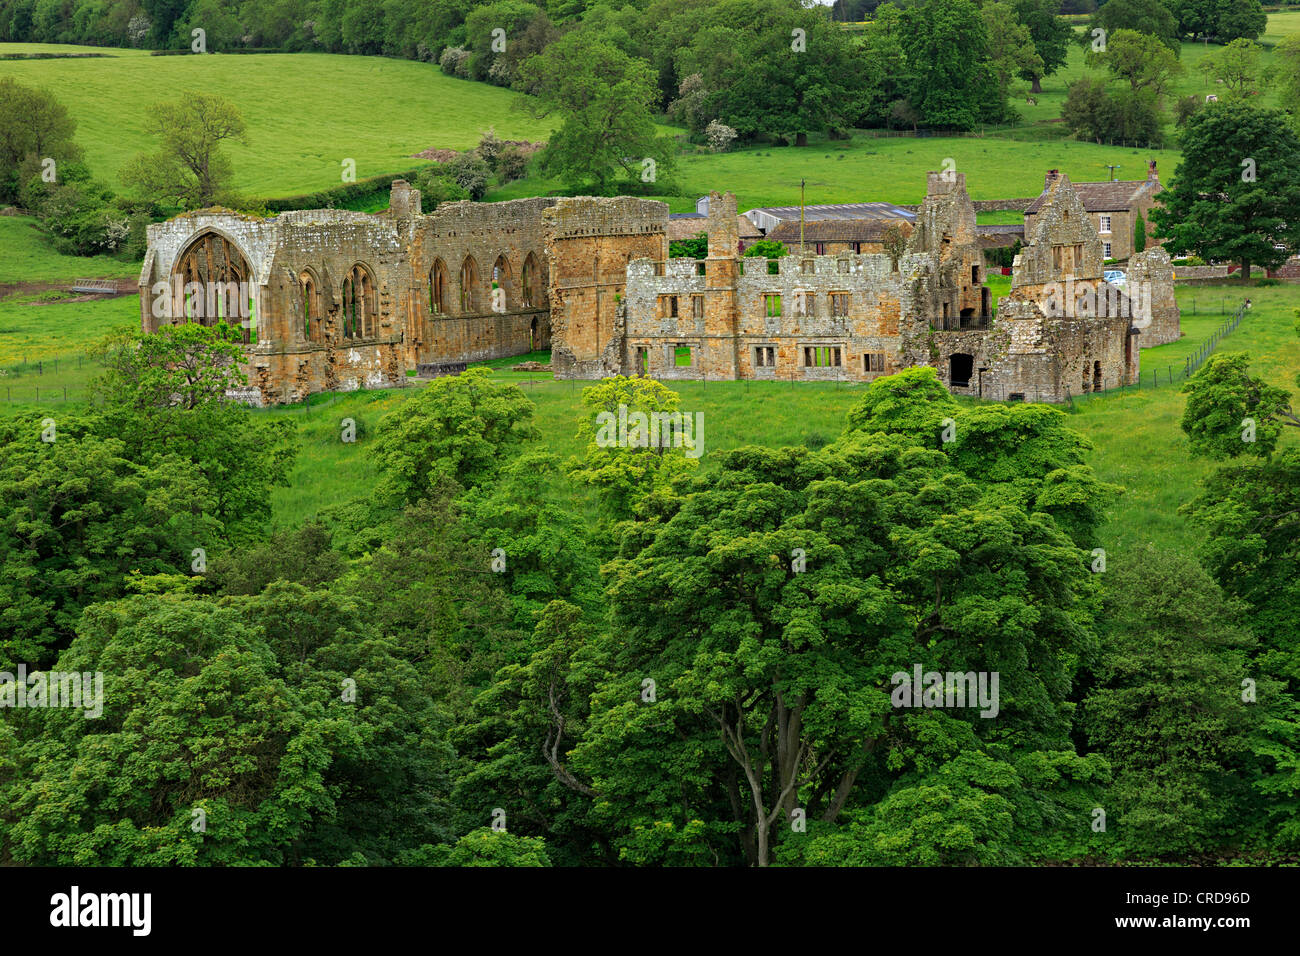 Egglestone Abbey, County Durham. 12th century abbey founded by the order of White Canons. - Stock Image